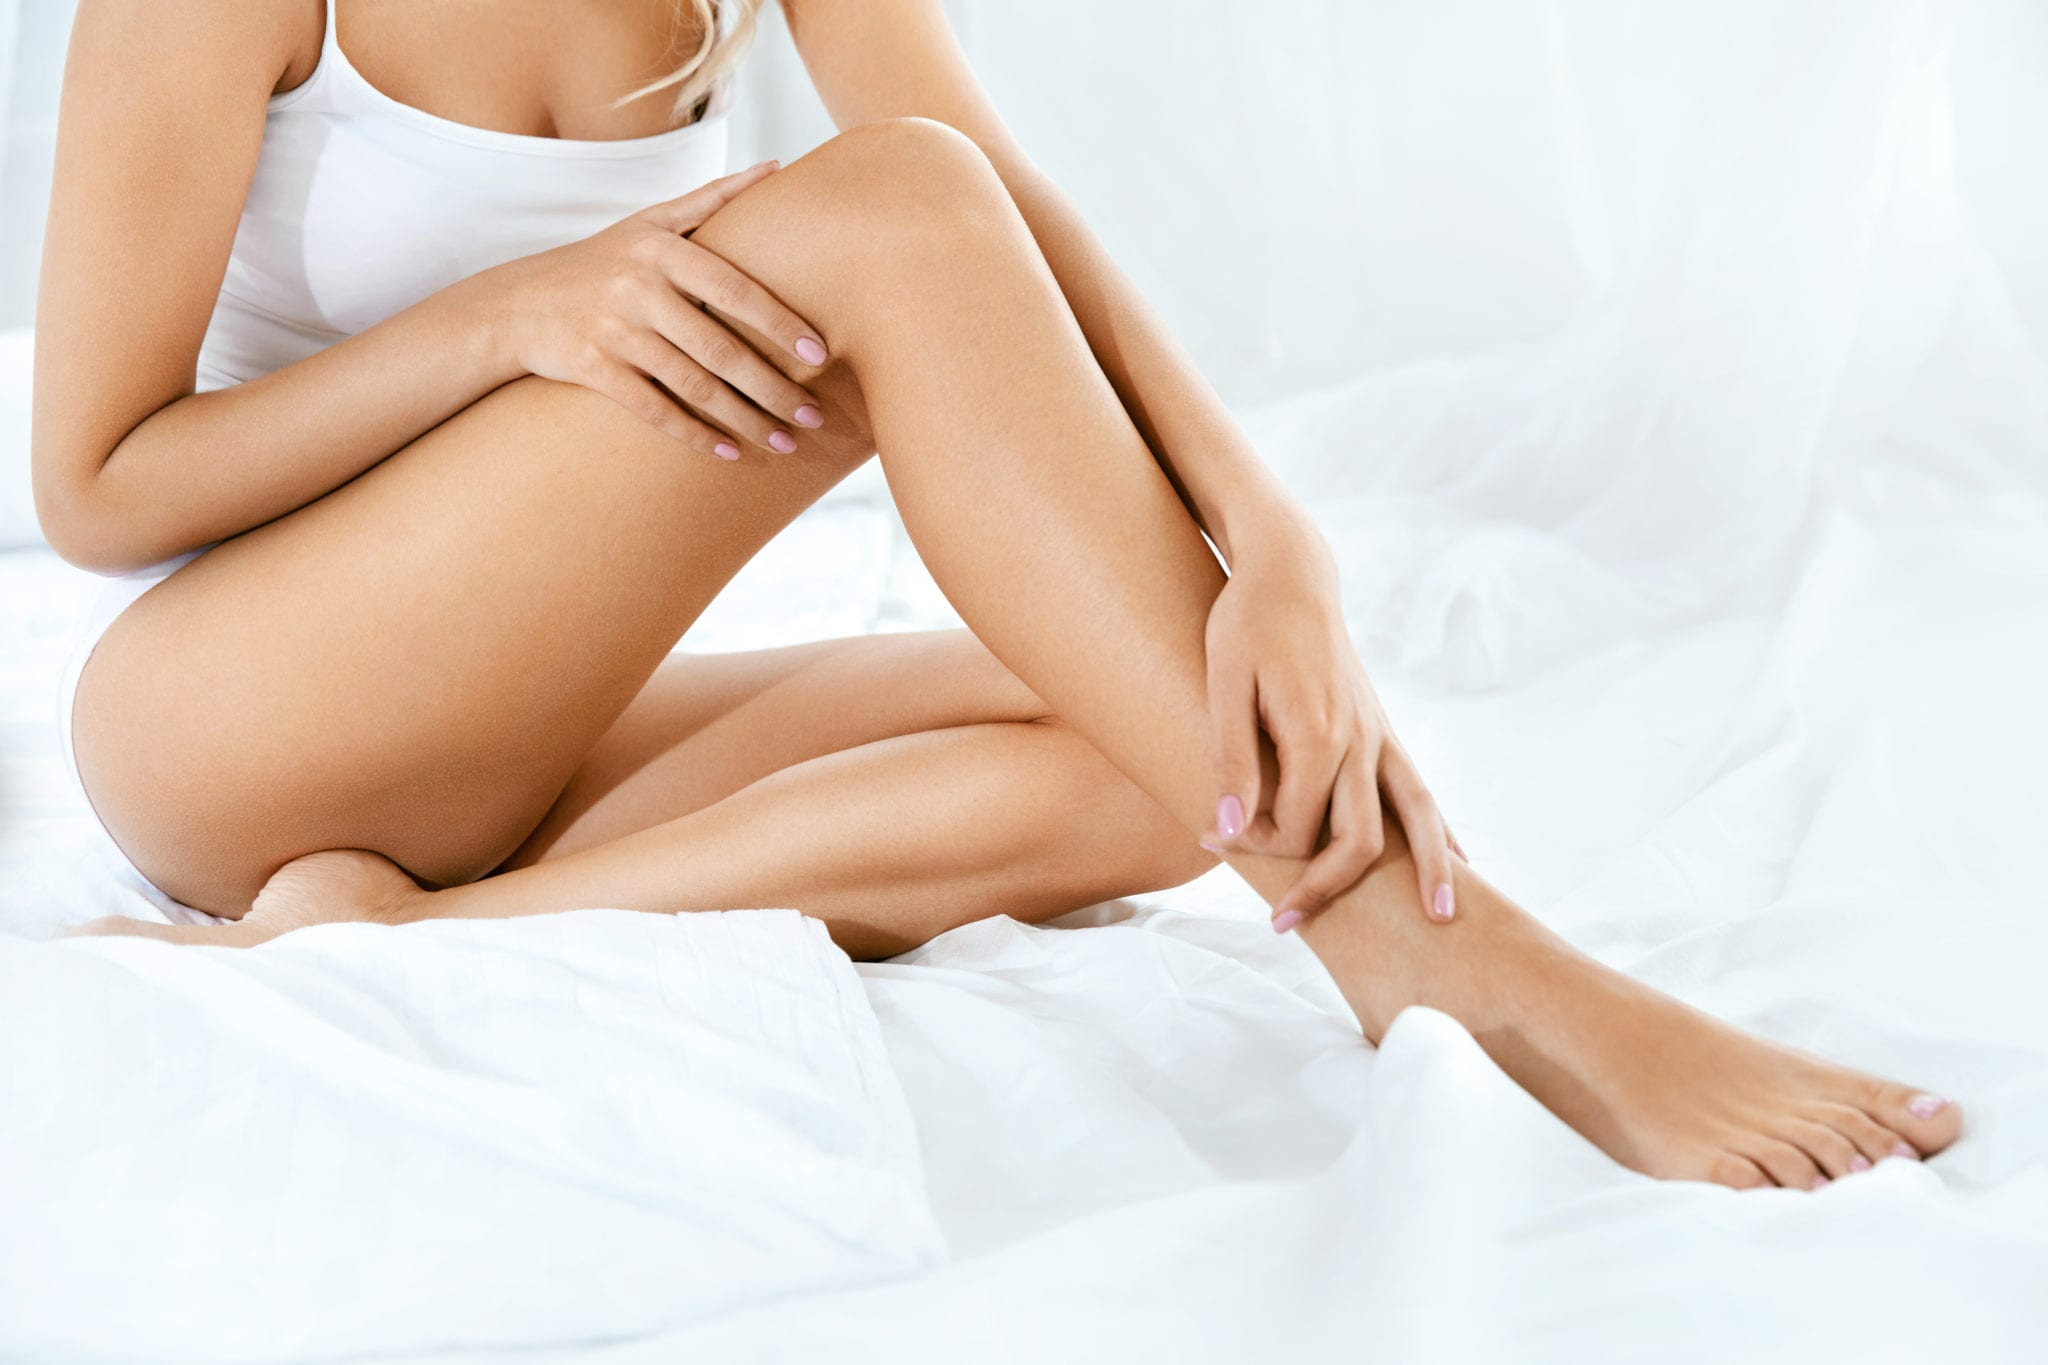 How Harmful is Waxing for Your Skin?